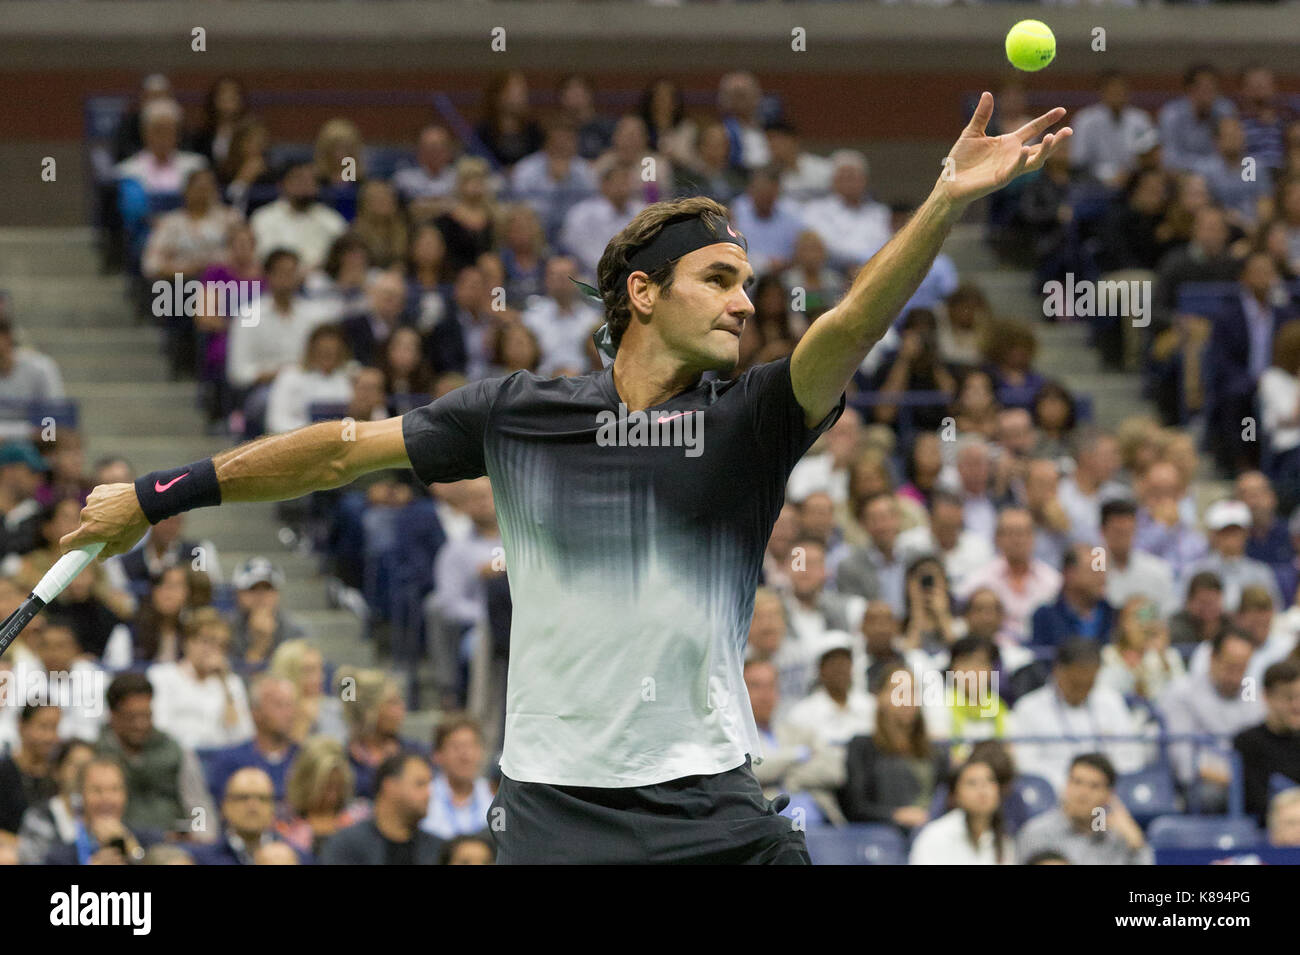 Roger Federer (SWI) competing at the 2017 US Open Tennis Championships - Stock Image